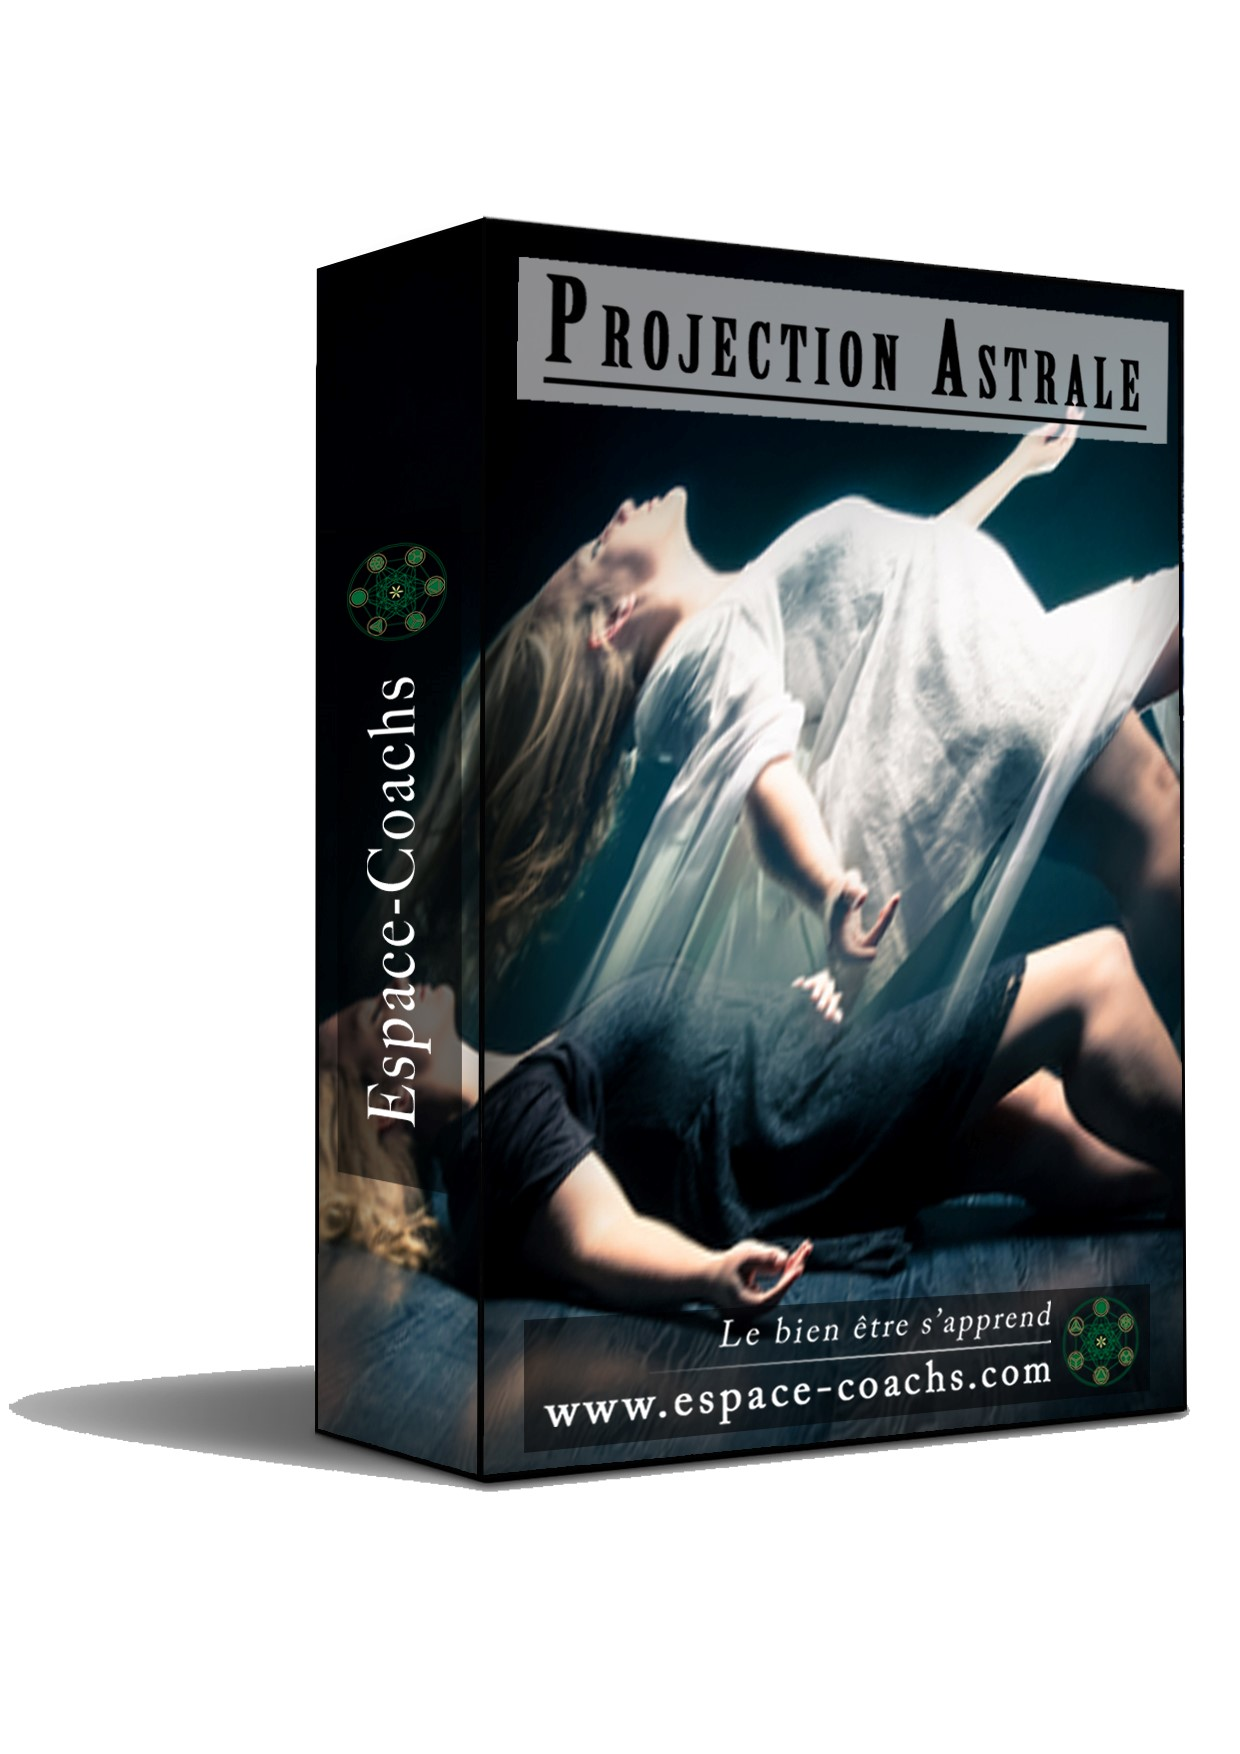 Projection astral box